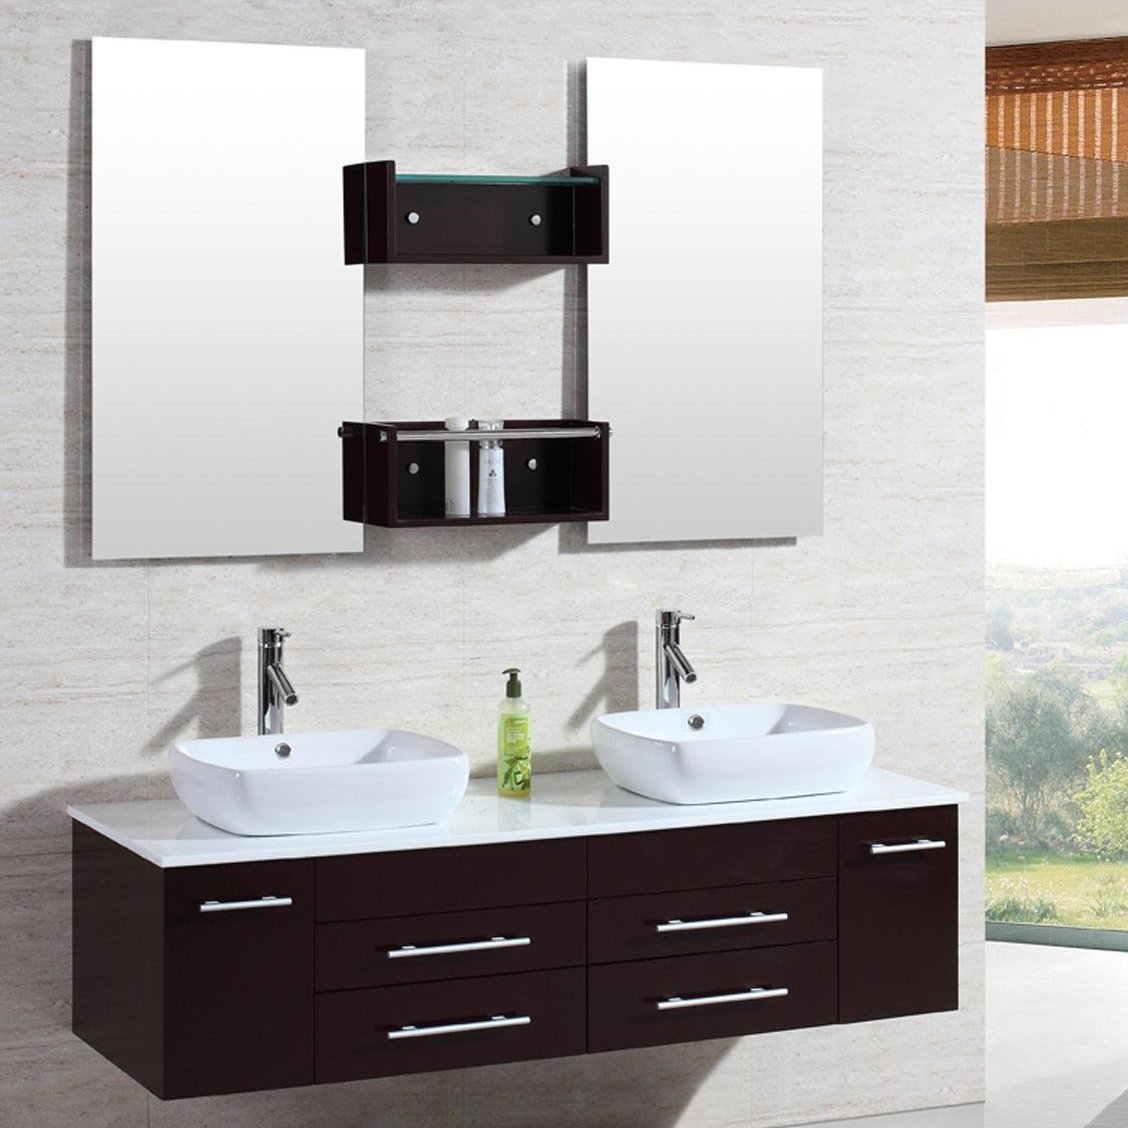 Floating Bathroom Vanity 60